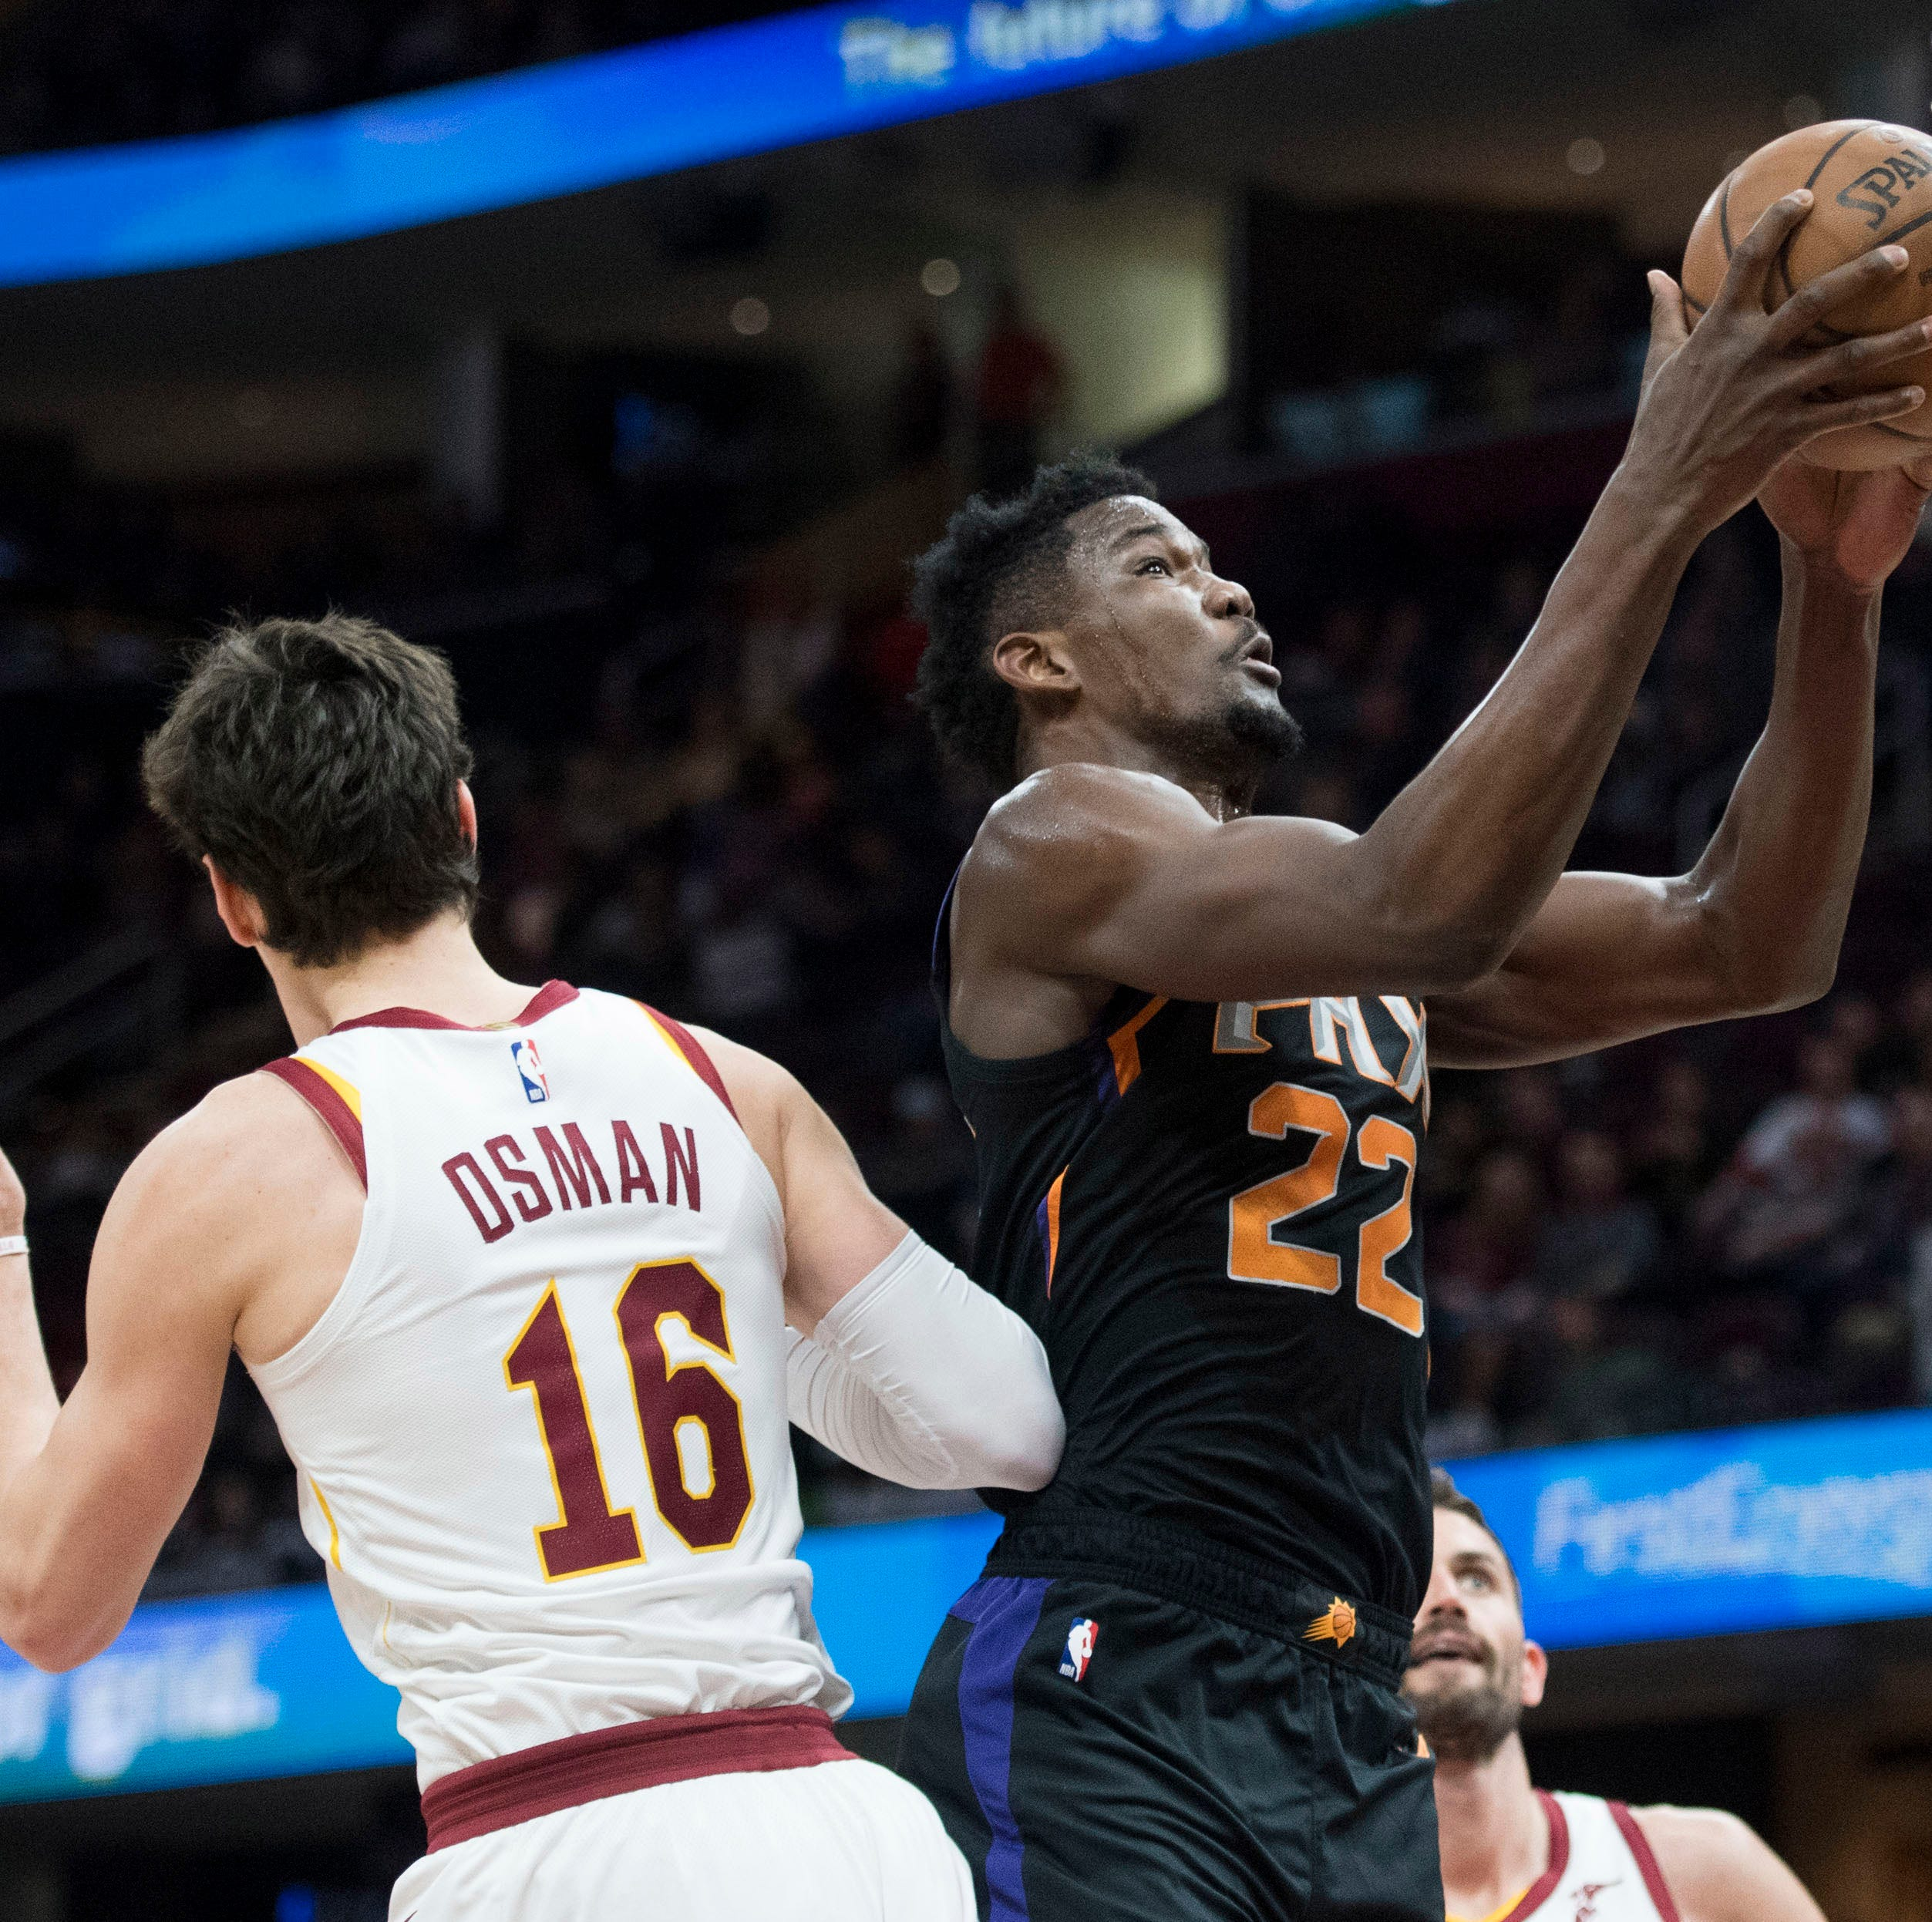 Deandre Ayton ready to 'take over' after record 16th straight loss by Phoenix Suns